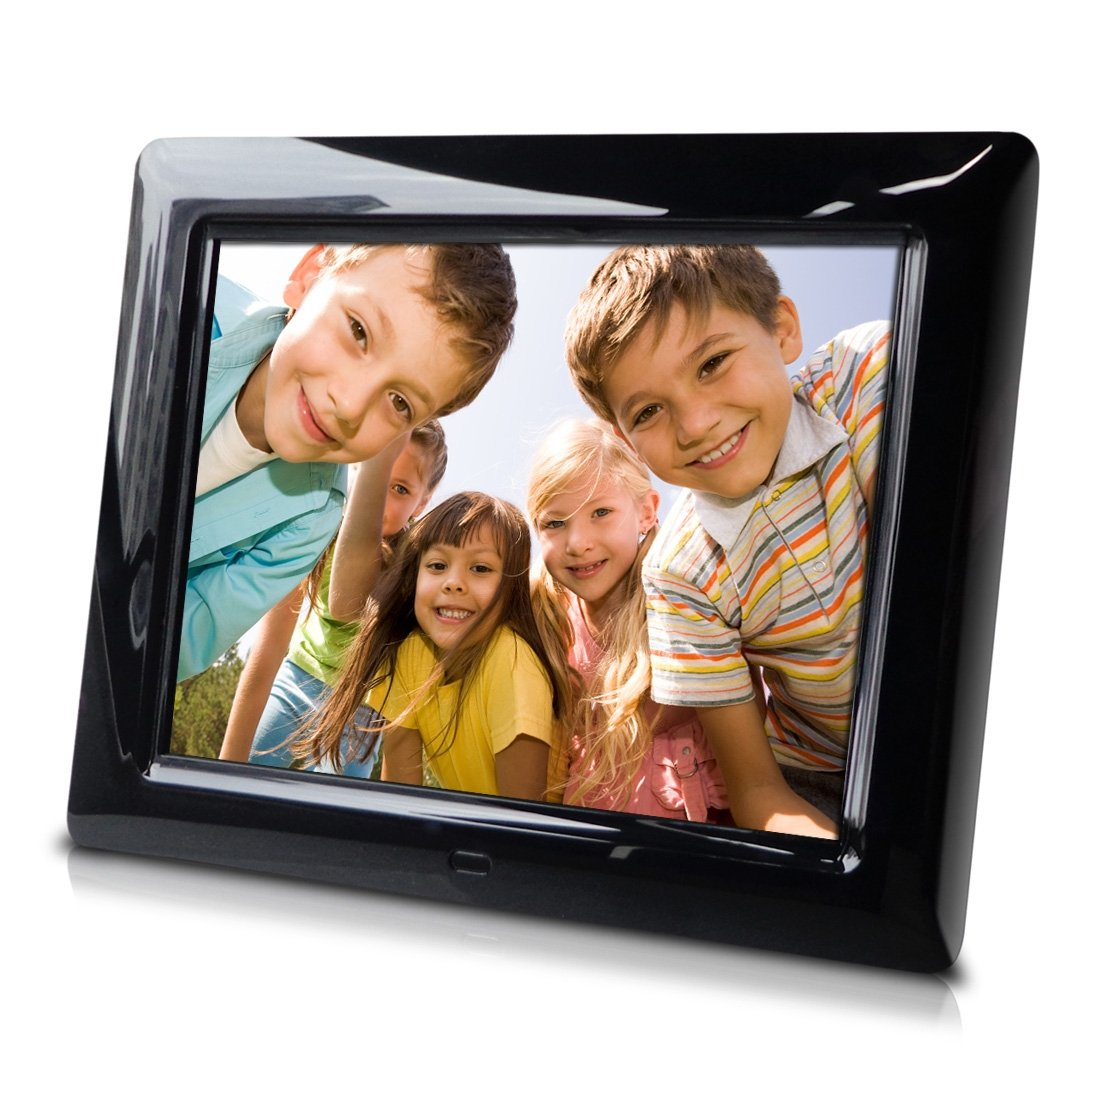 Sungale PF803 8'' Digital Photo Frame, Hi-resolution, transitional effects, slideshow, interval time adjust, more